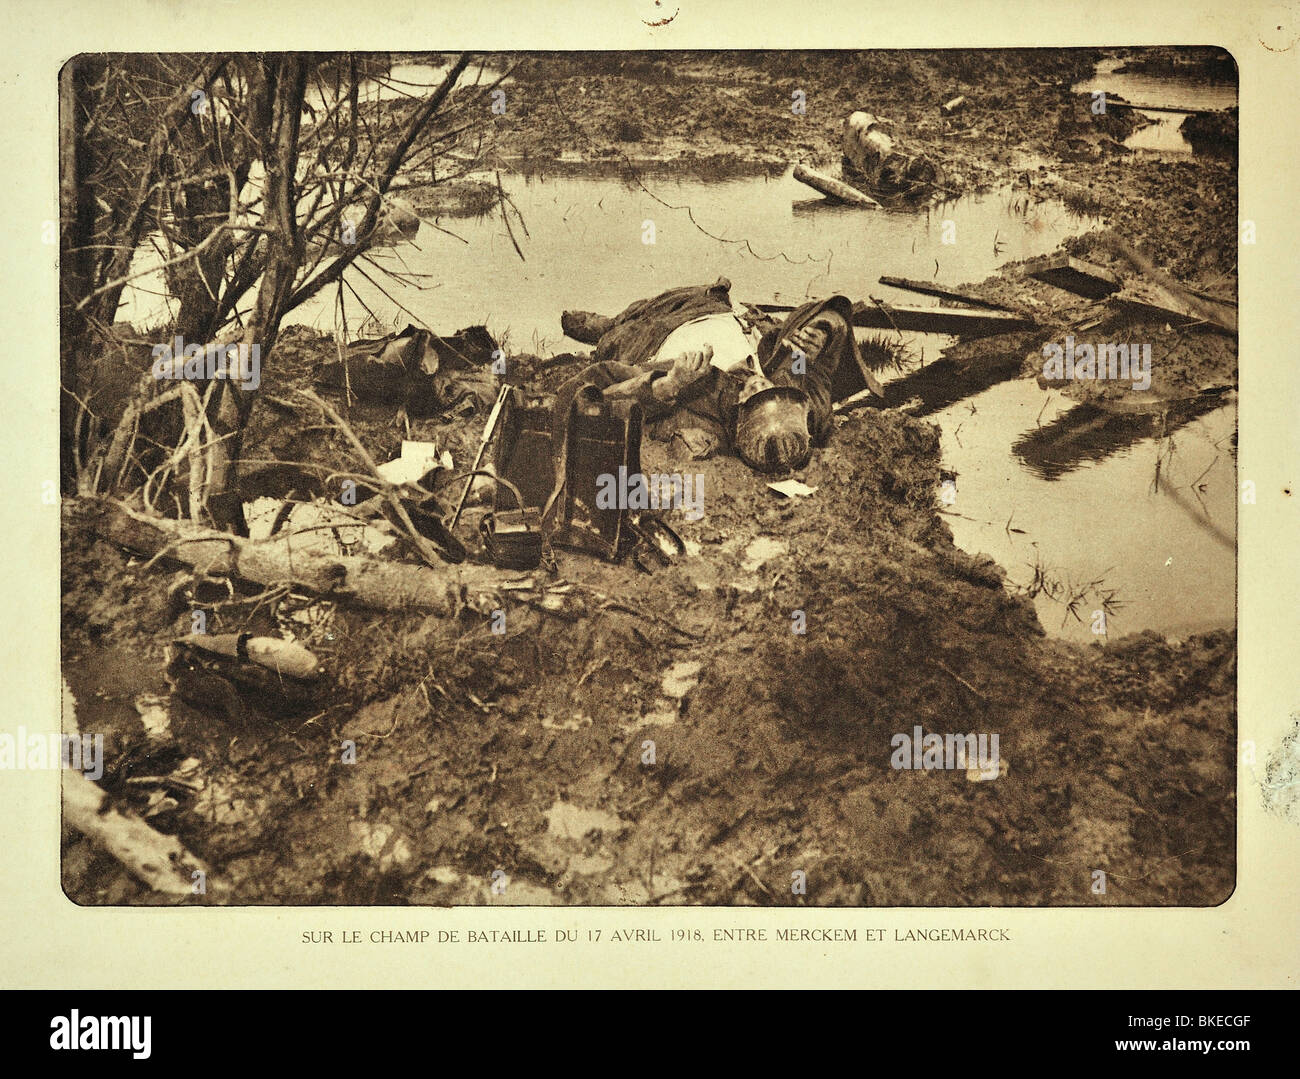 Corpse of dead WWI German soldier killed in action at battlefield at Merkem in West Flanders during First World - Stock Image